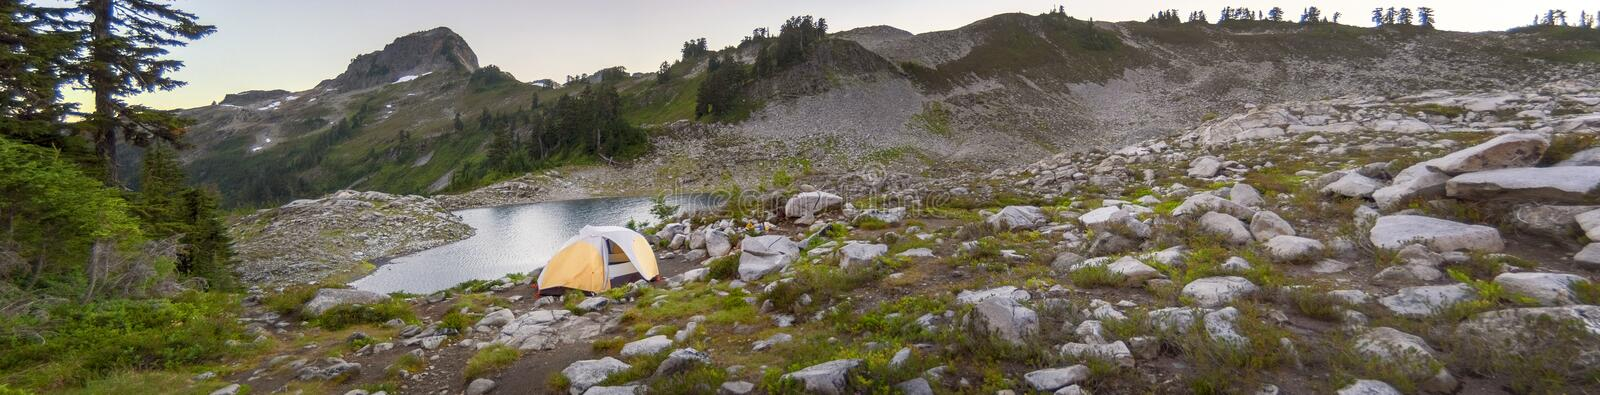 Camping at Lake Ann in the Mt. Baker National Forest, Washington. Tent camping at the foot of the majestic Mt. Shuksan and the lower Curtis Glacier during a stock photos